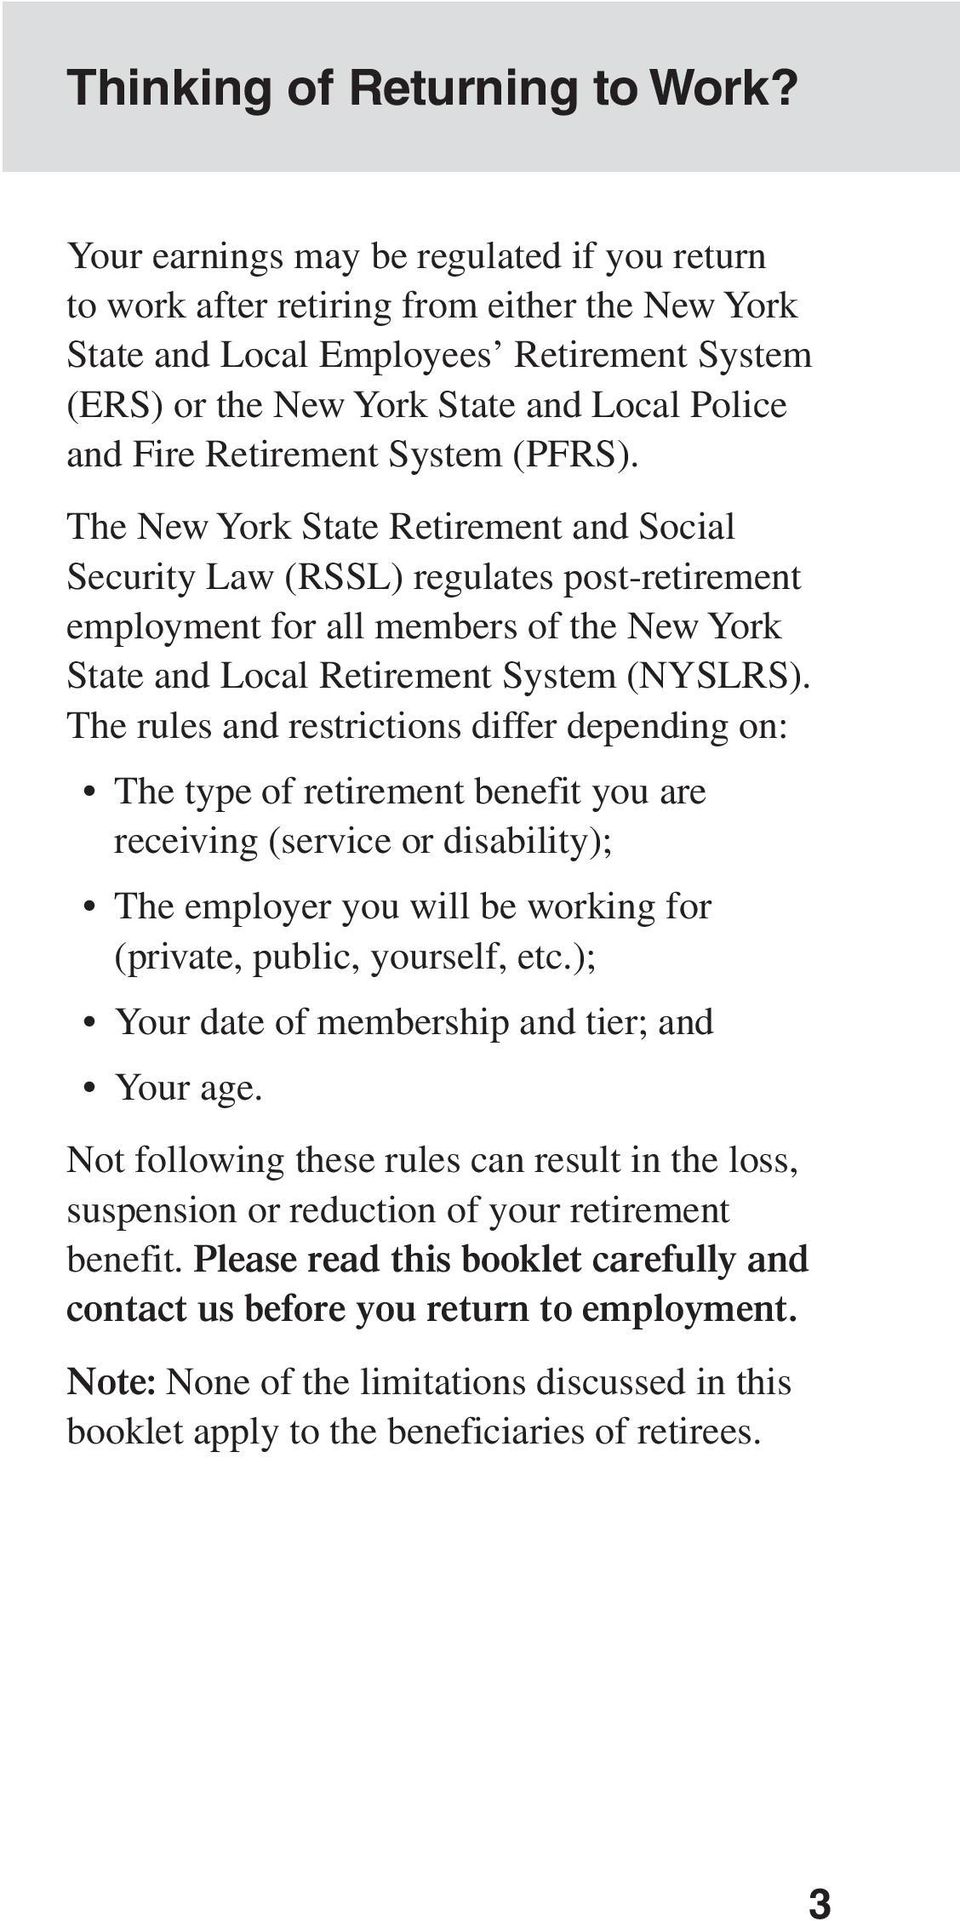 Retirement System (PFRS). The New York State Retirement and Social Security Law (RSSL) regulates post-retirement employment for all members of the New York State and Local Retirement System (NYSLRS).